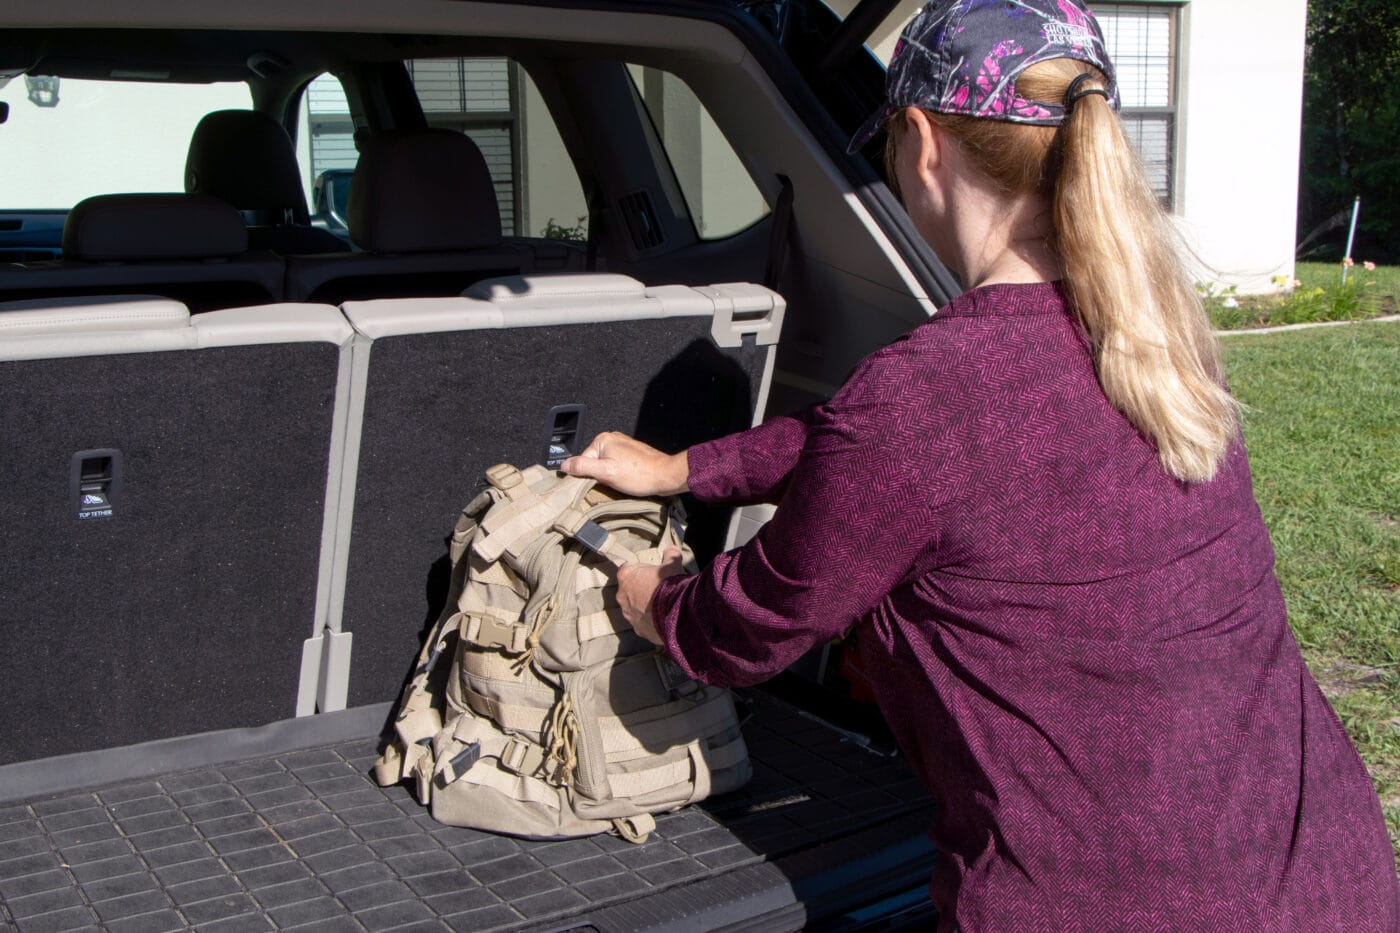 Woman placing get home bag in back of a vehicle